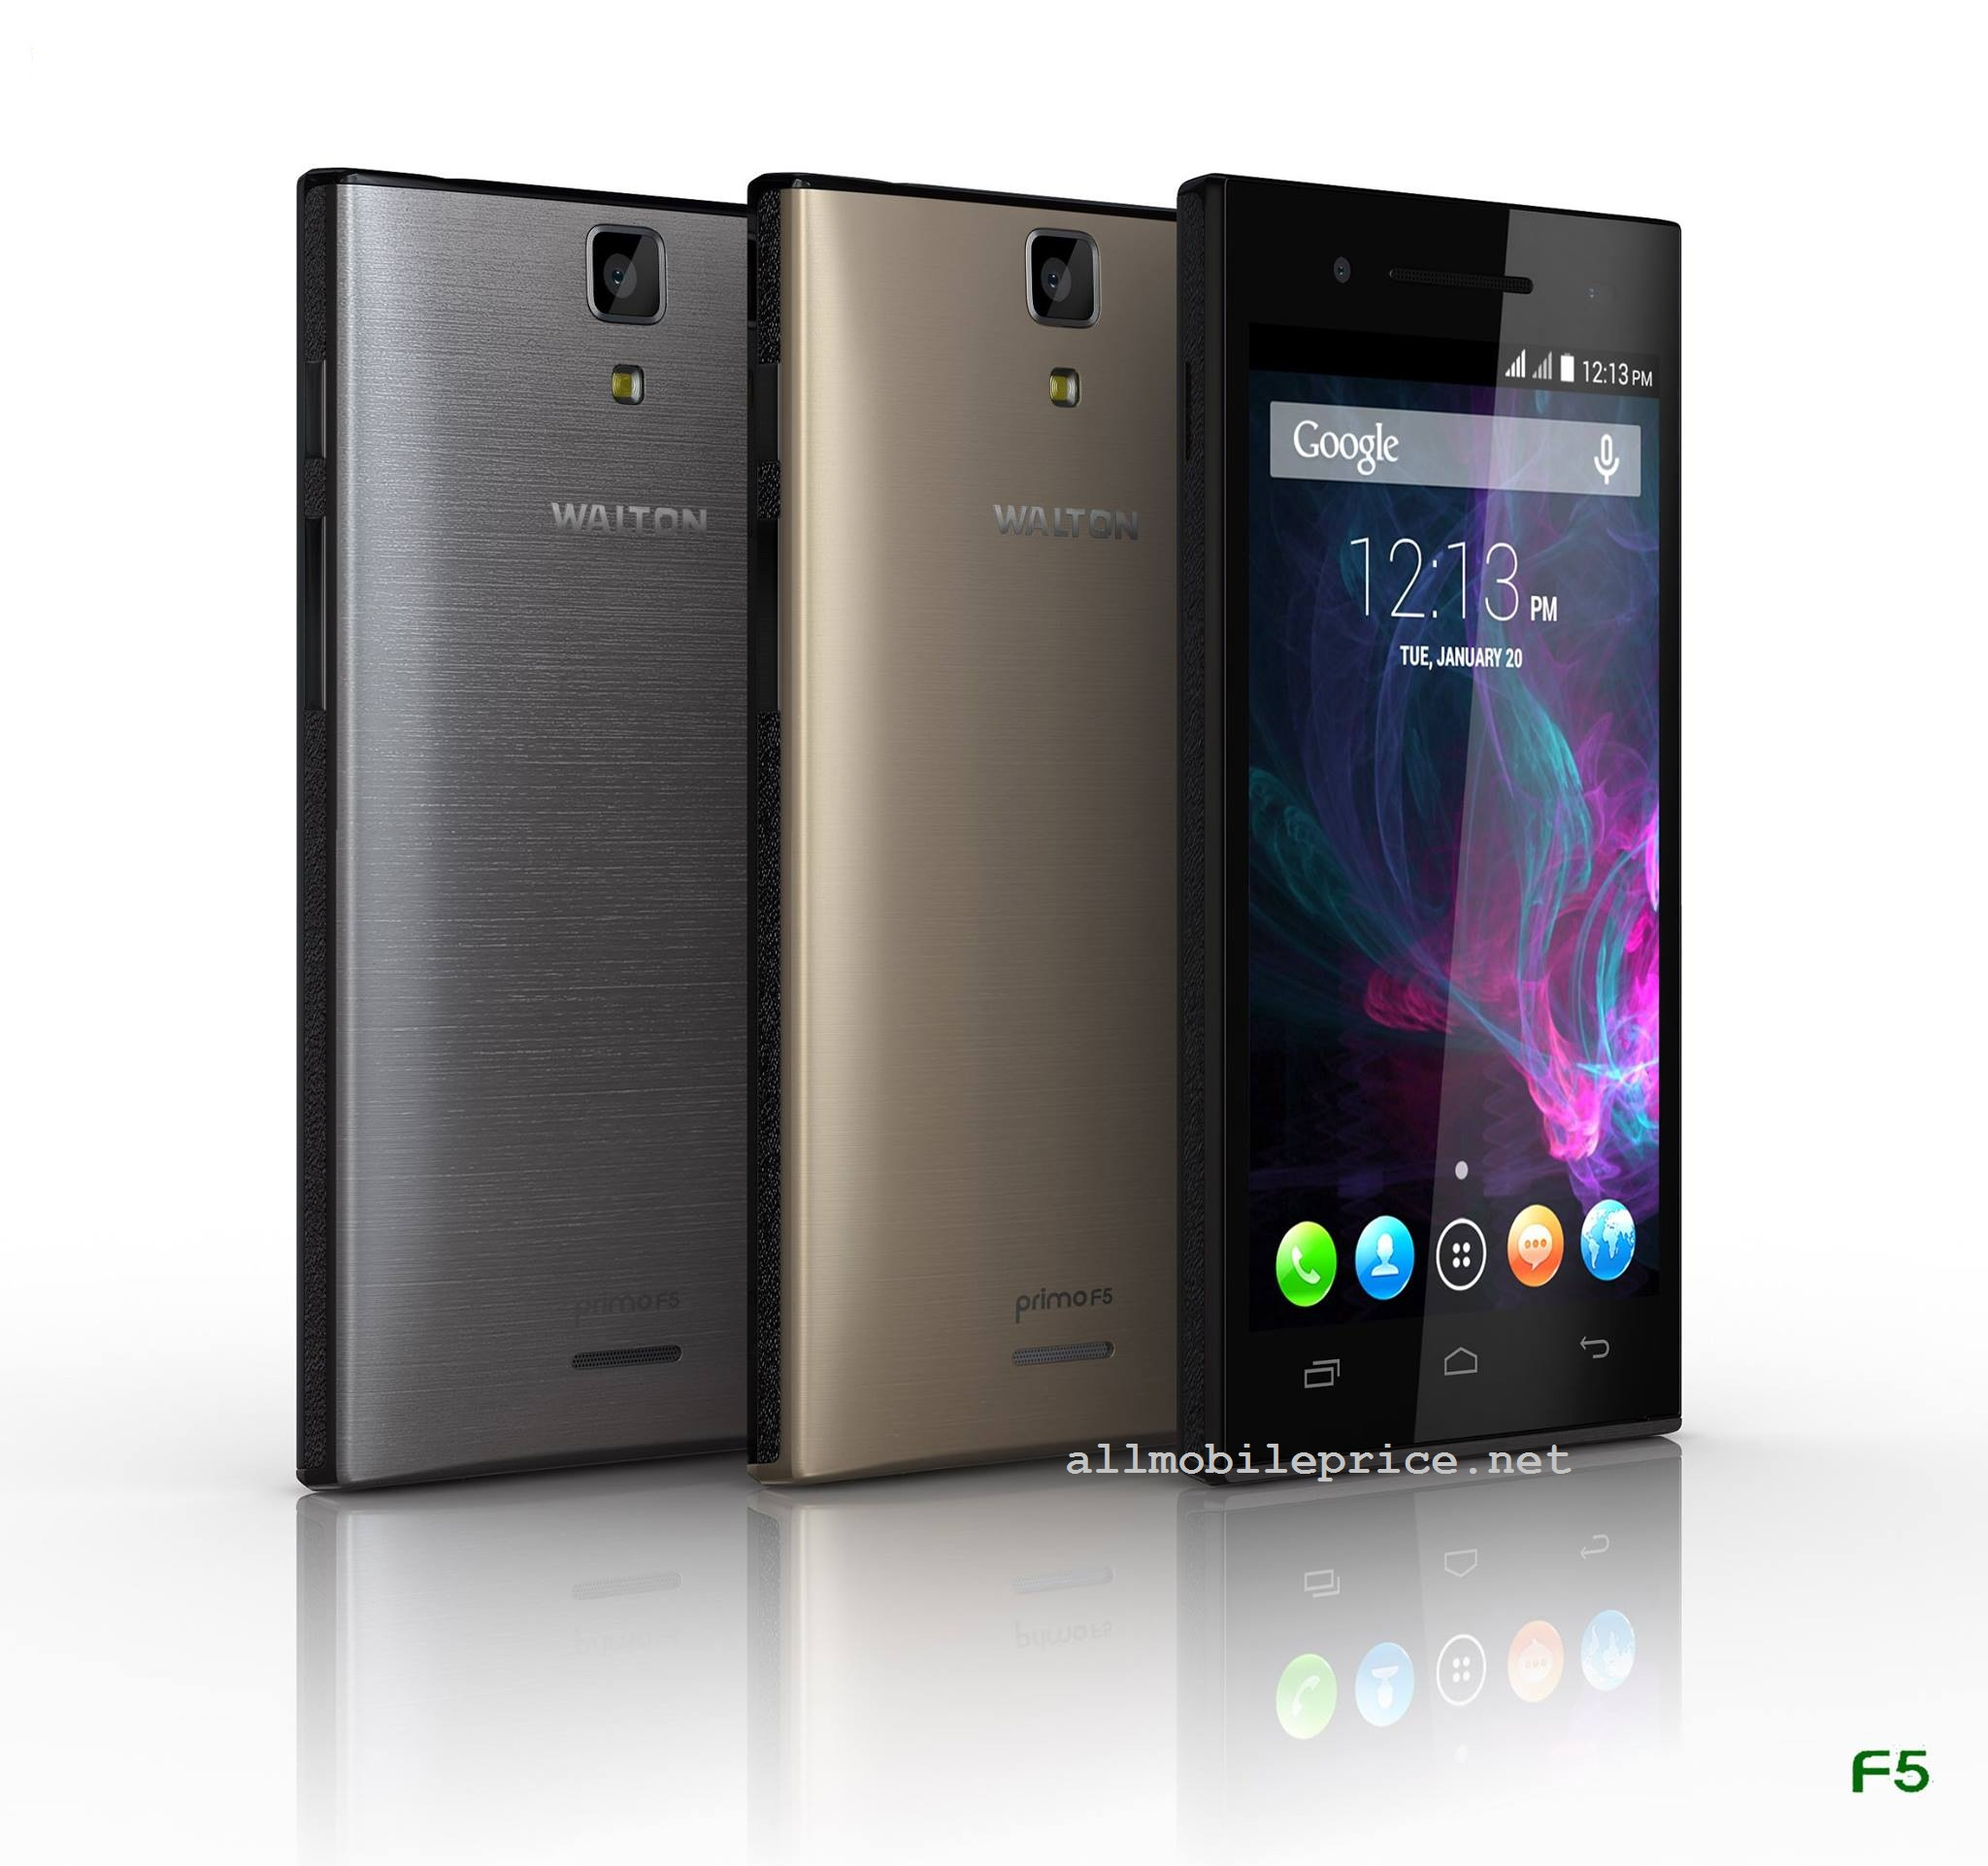 walton primo f5 Price in Bangladesh